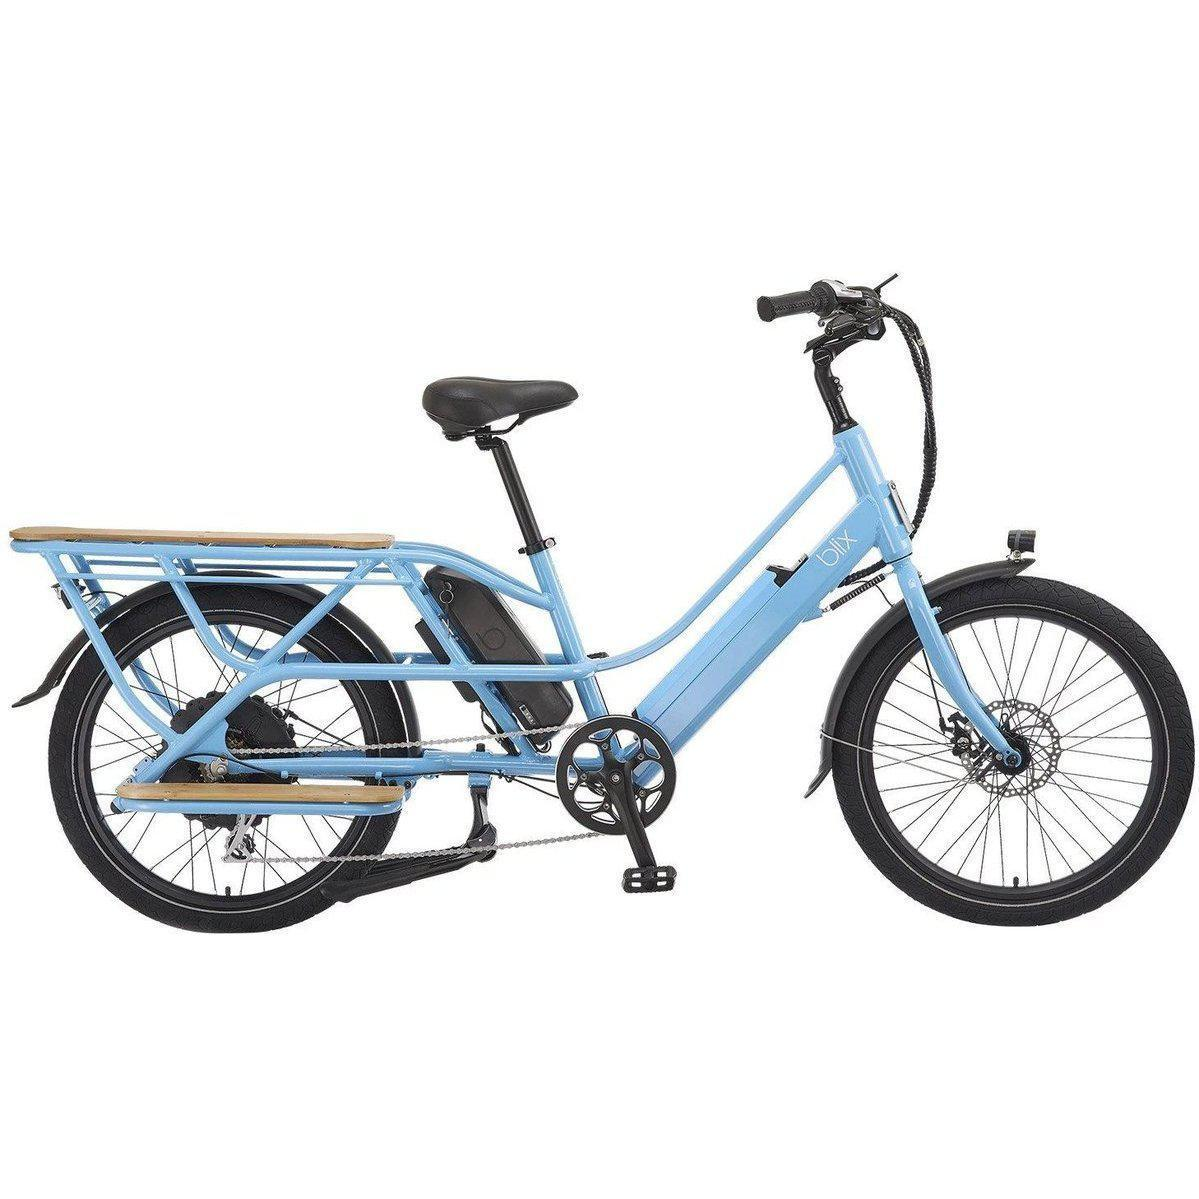 BLIX PACKA-Oregon E-Bikes